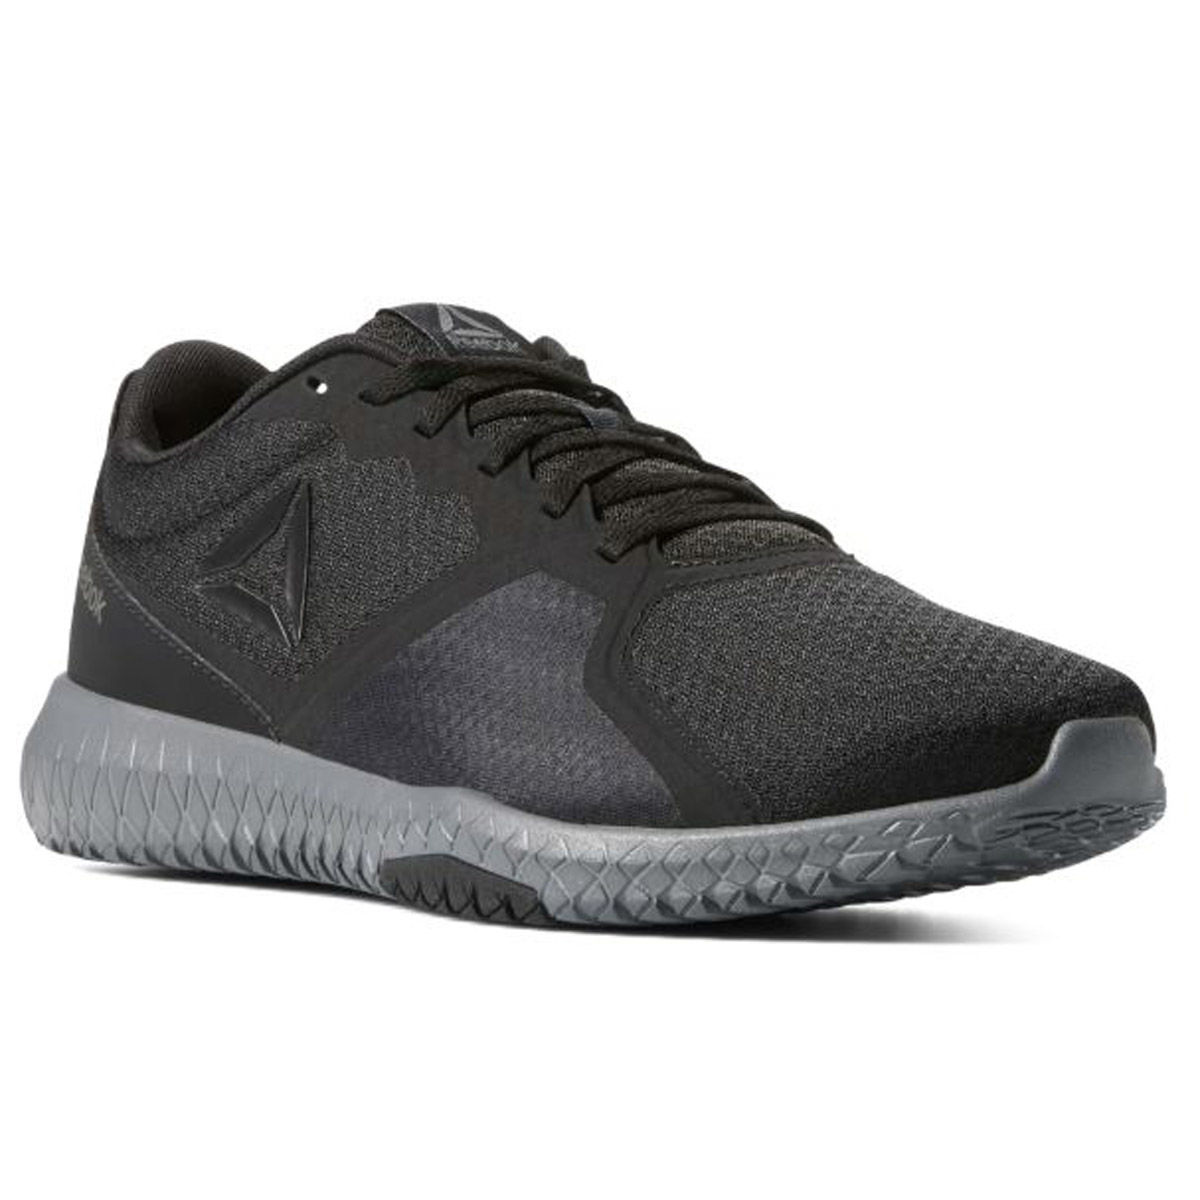 Reebok Flexagon Force Mens Training Shoe